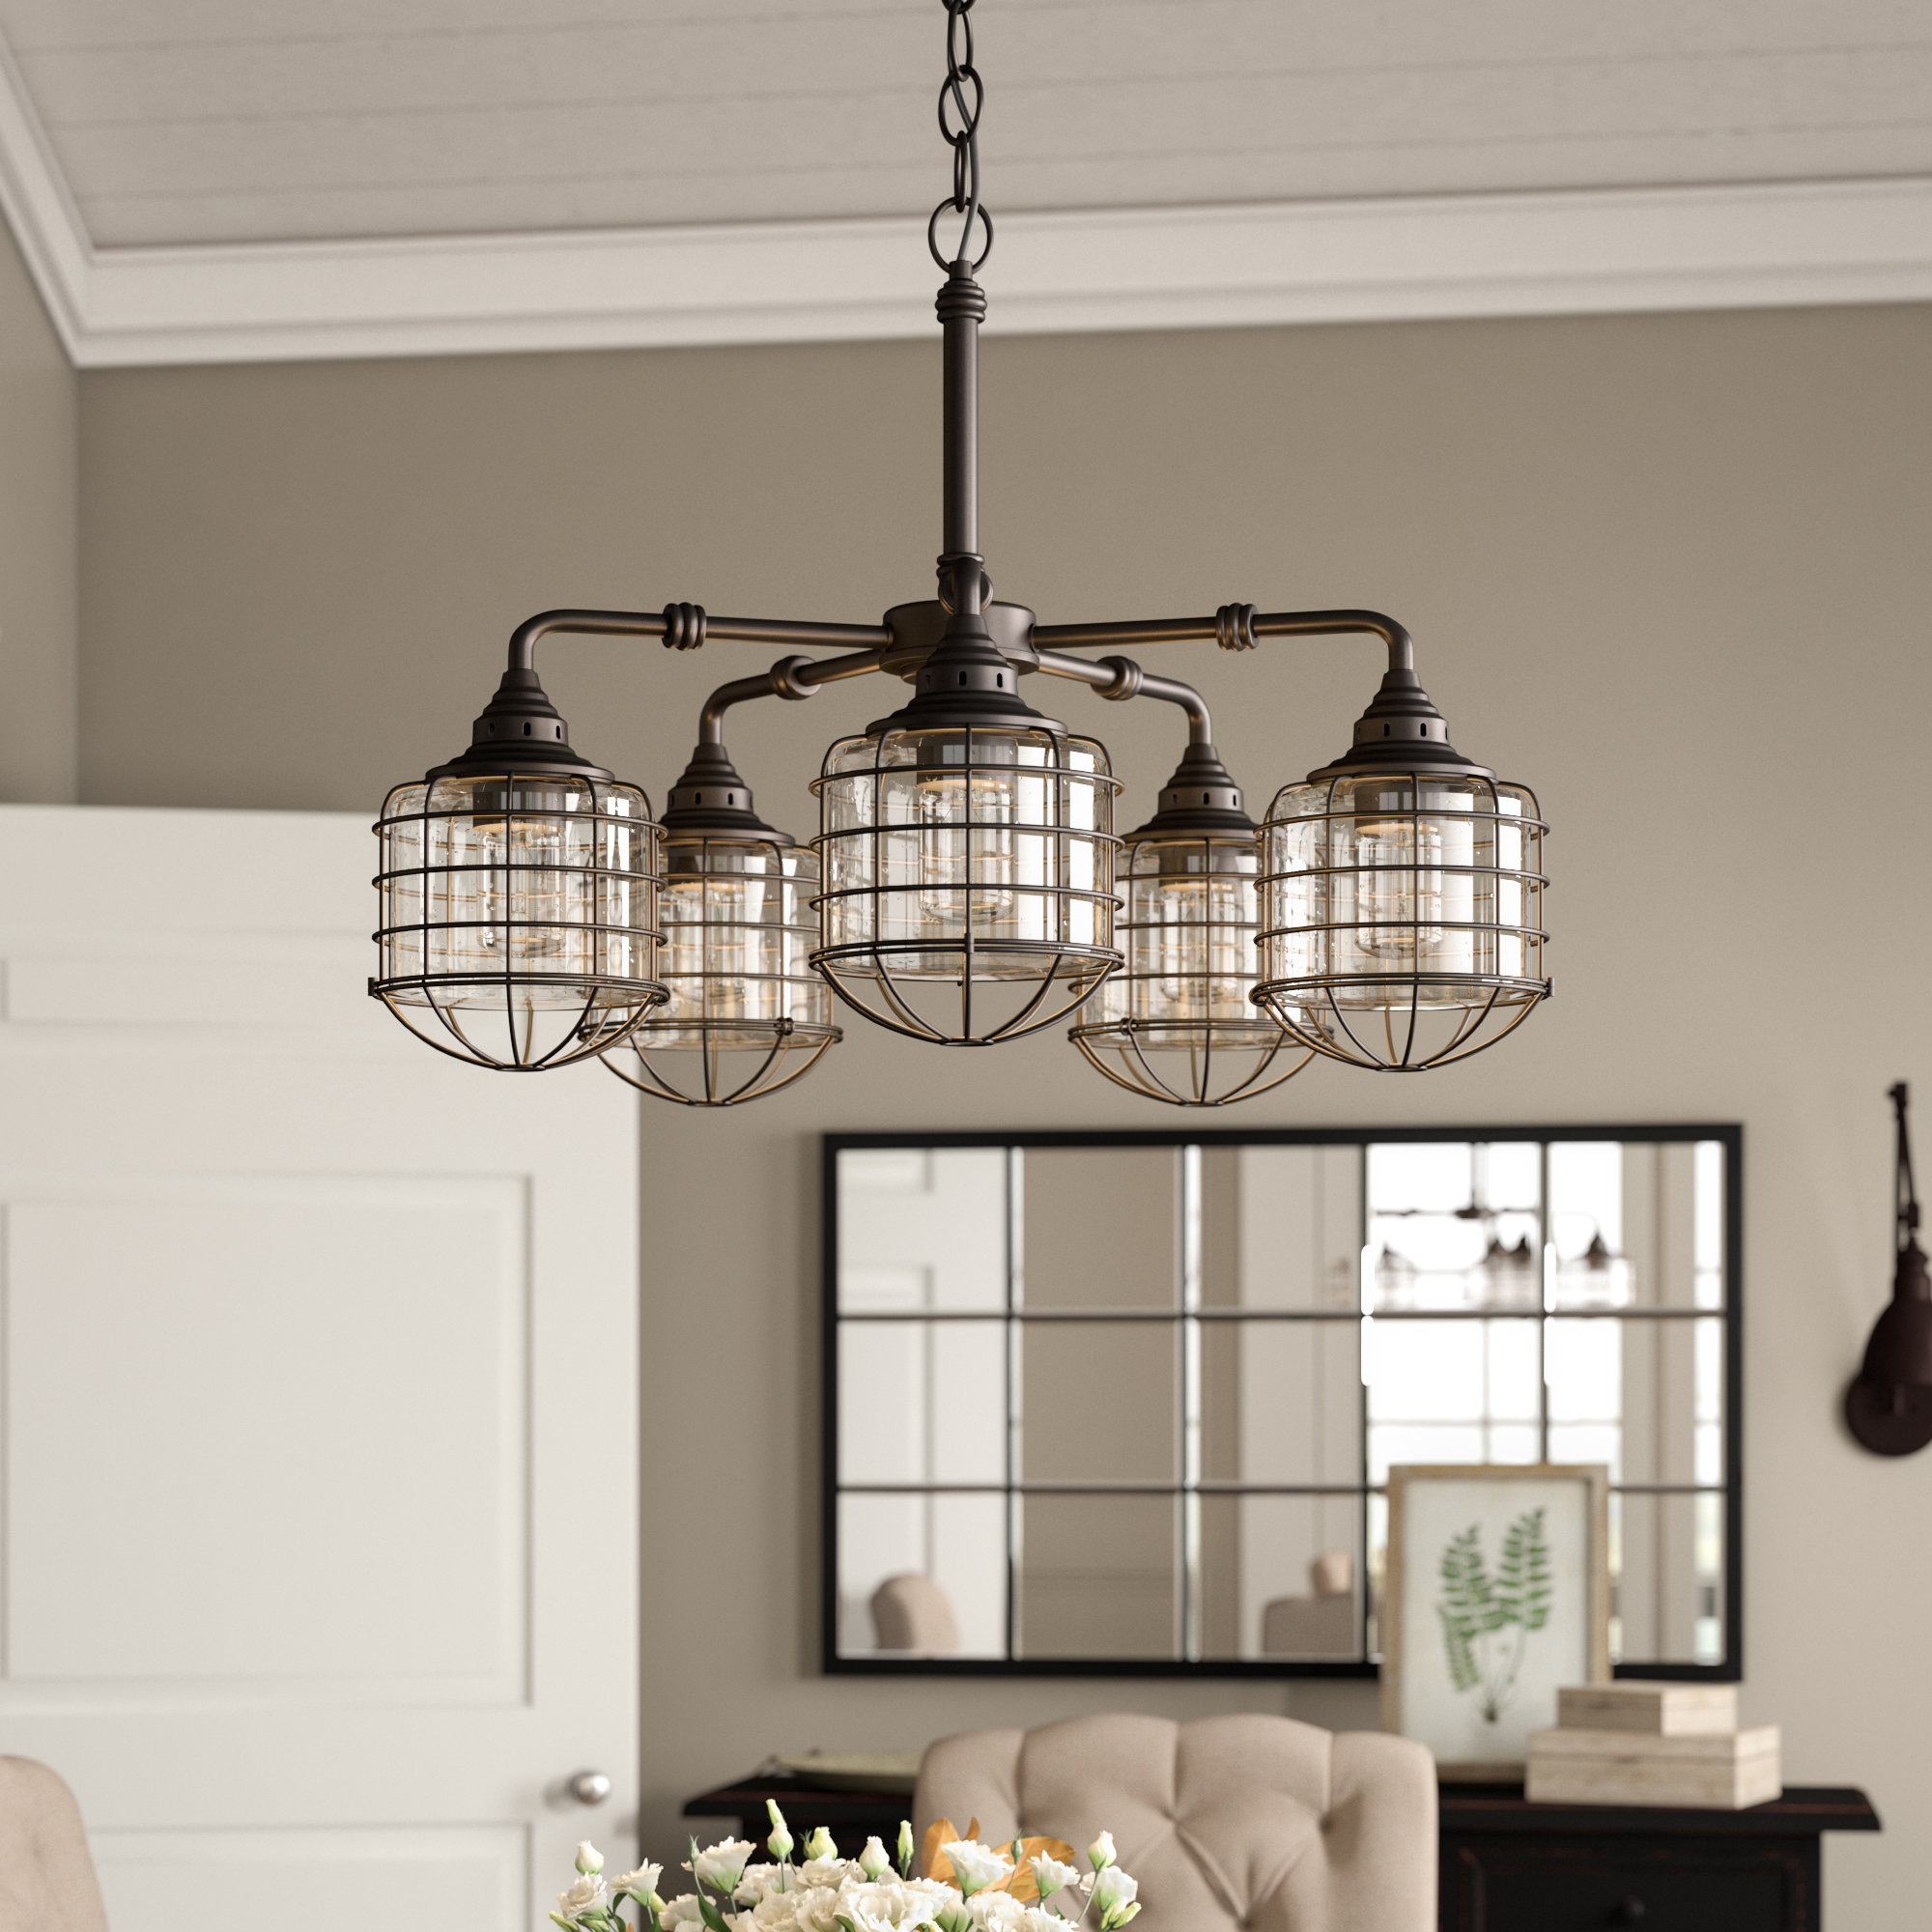 Roberts 5 Light Shaded Chandelier Throughout Popular Benedetto 5 Light Crystal Chandeliers (View 4 of 20)